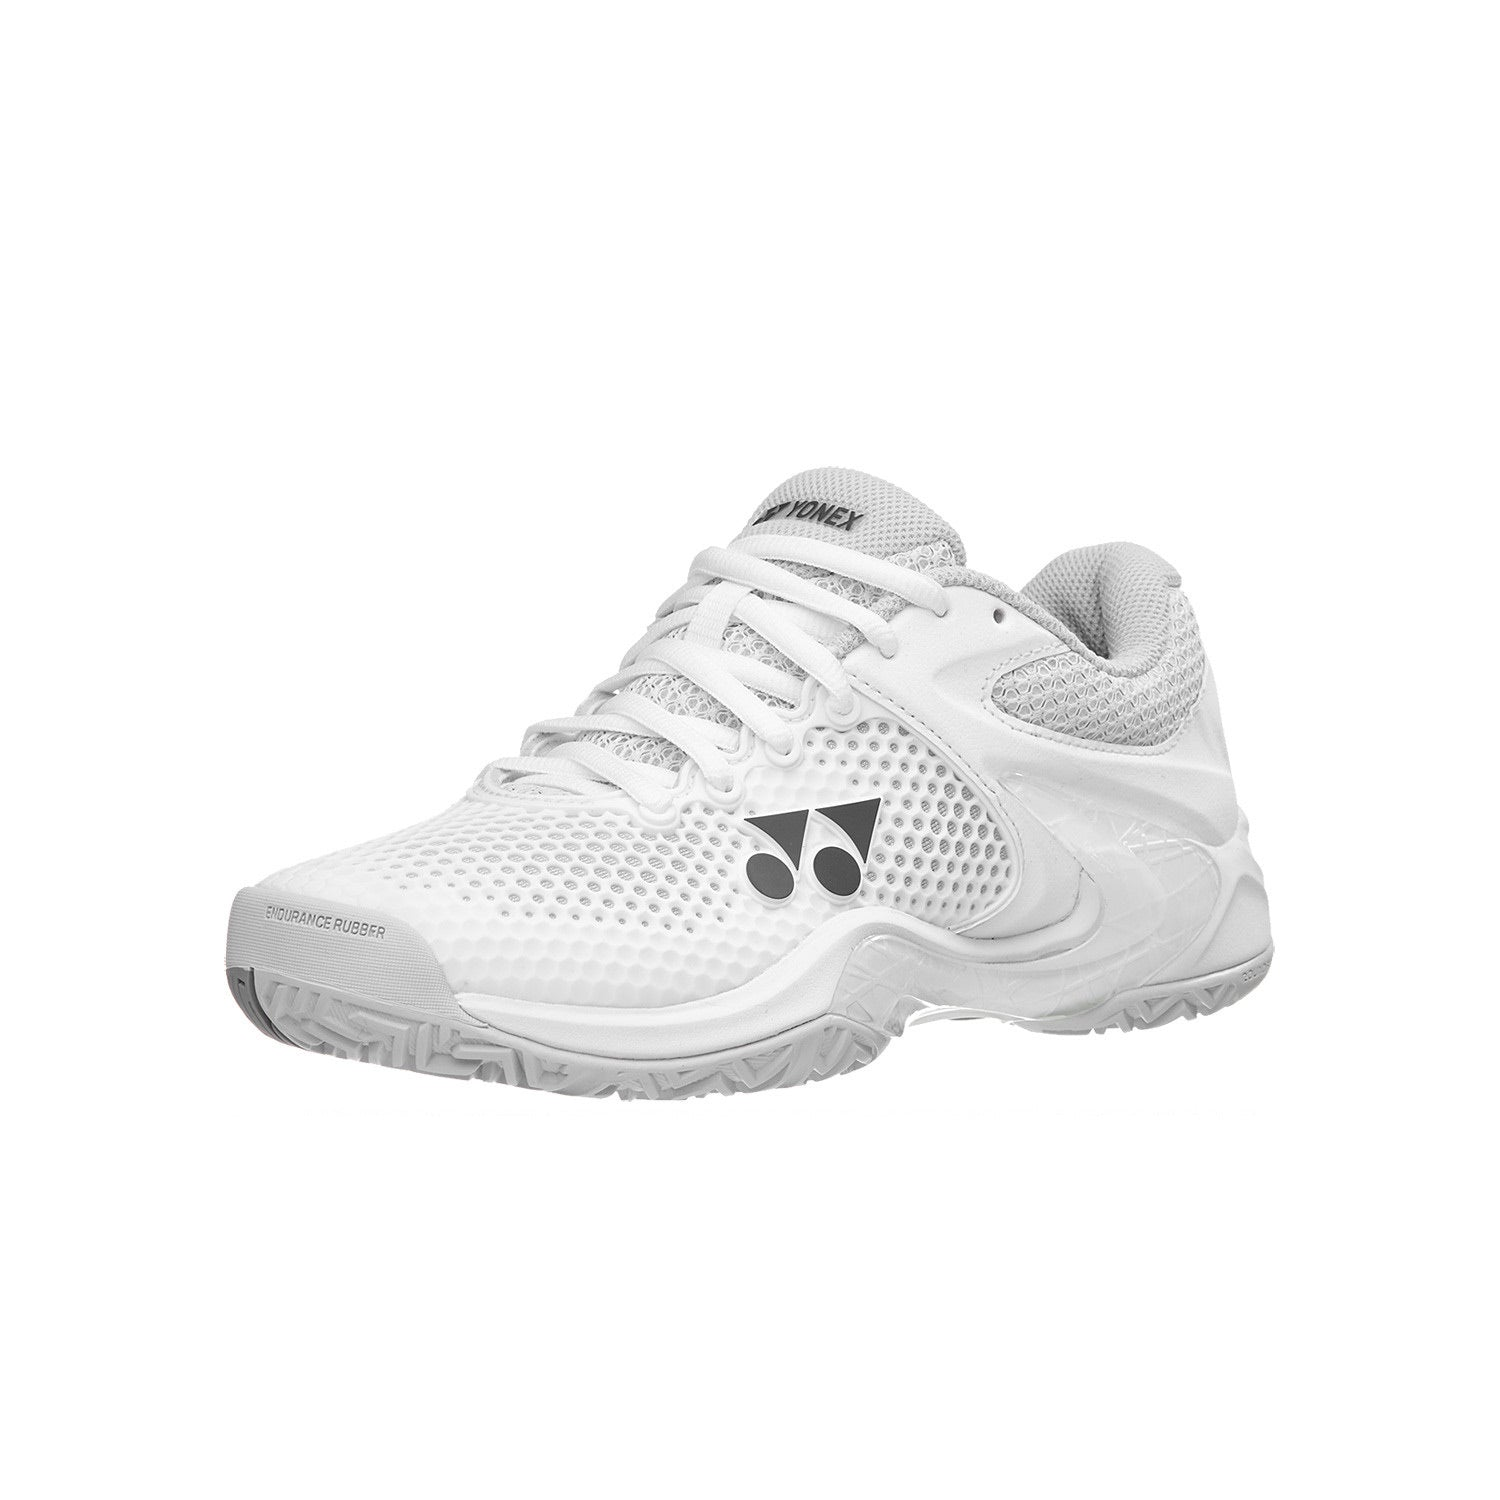 Yonex 2019 SHT Eclipsion 2 Ladies Tennis Shoes